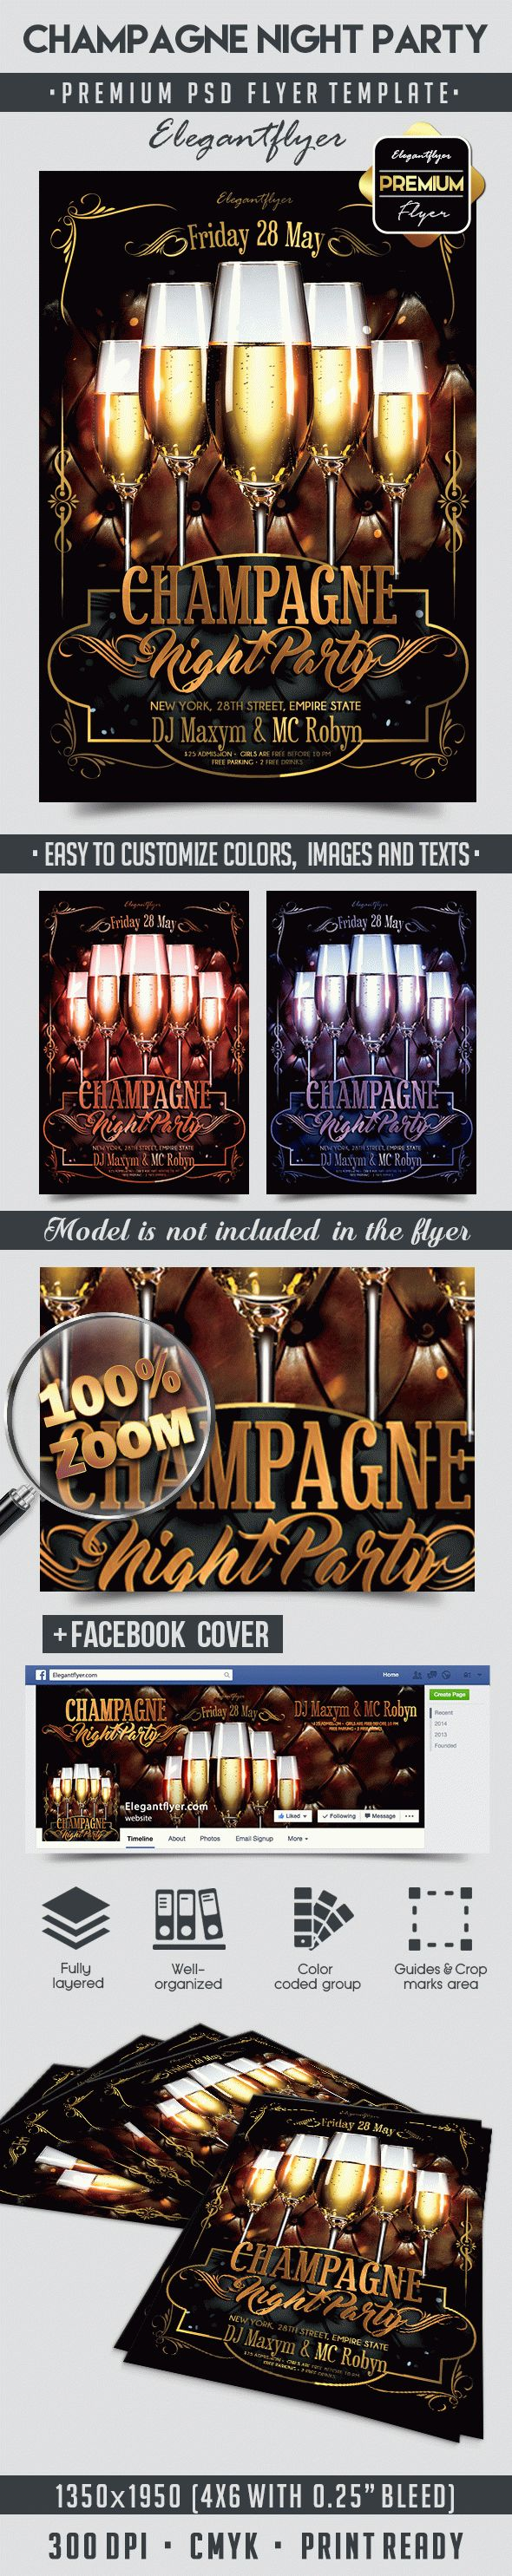 Champagne Night Party – Flyer PSD Template + Facebook Cover